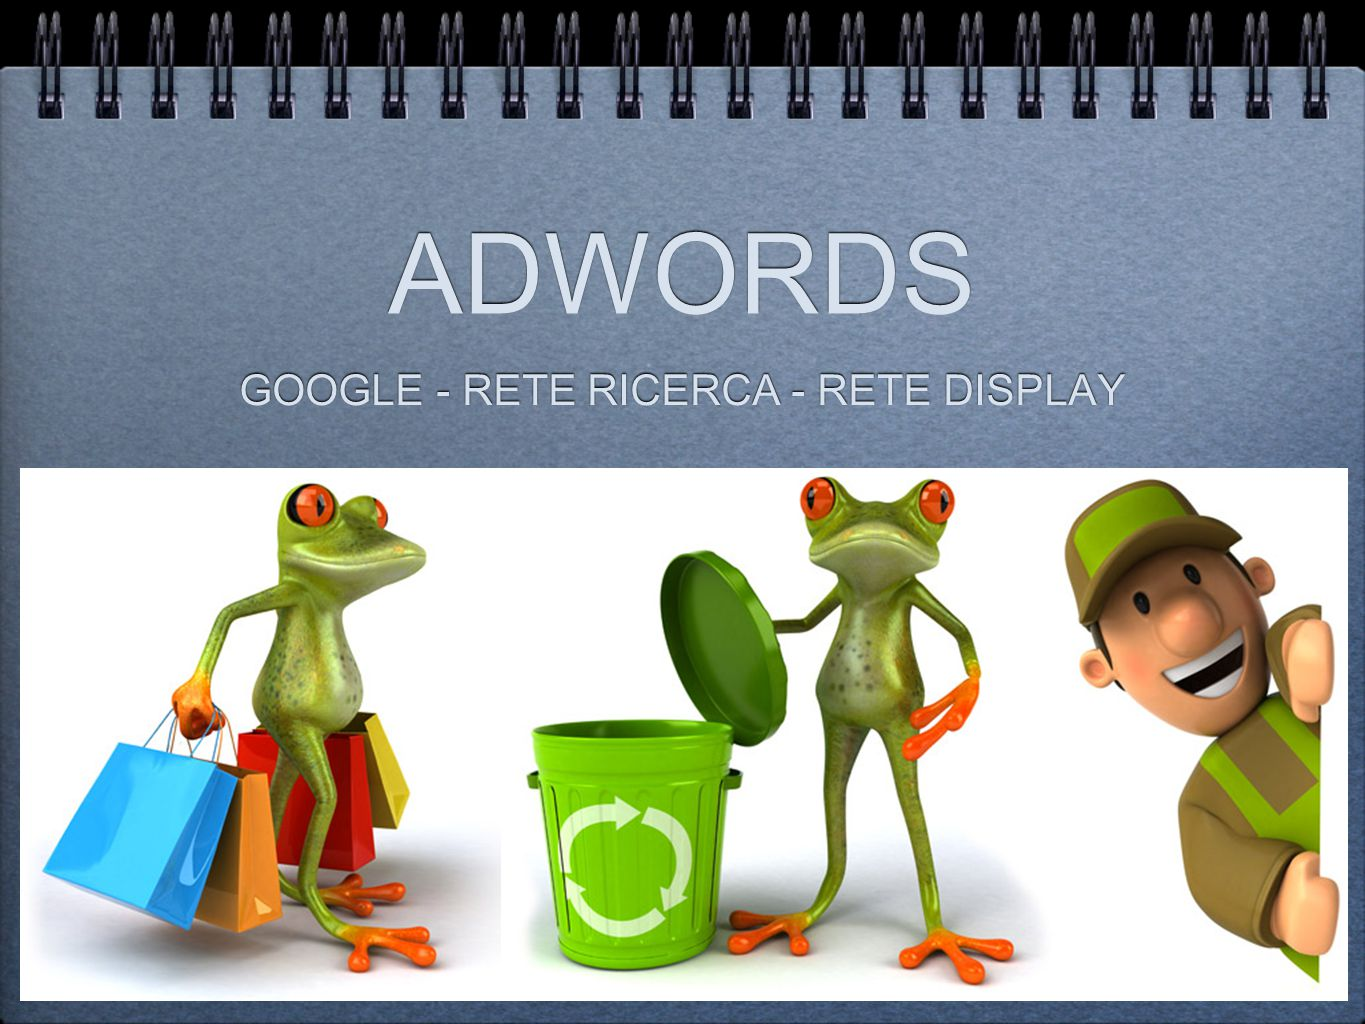 ADWORDS GOOGLE - RETE RICERCA - RETE DISPLAY